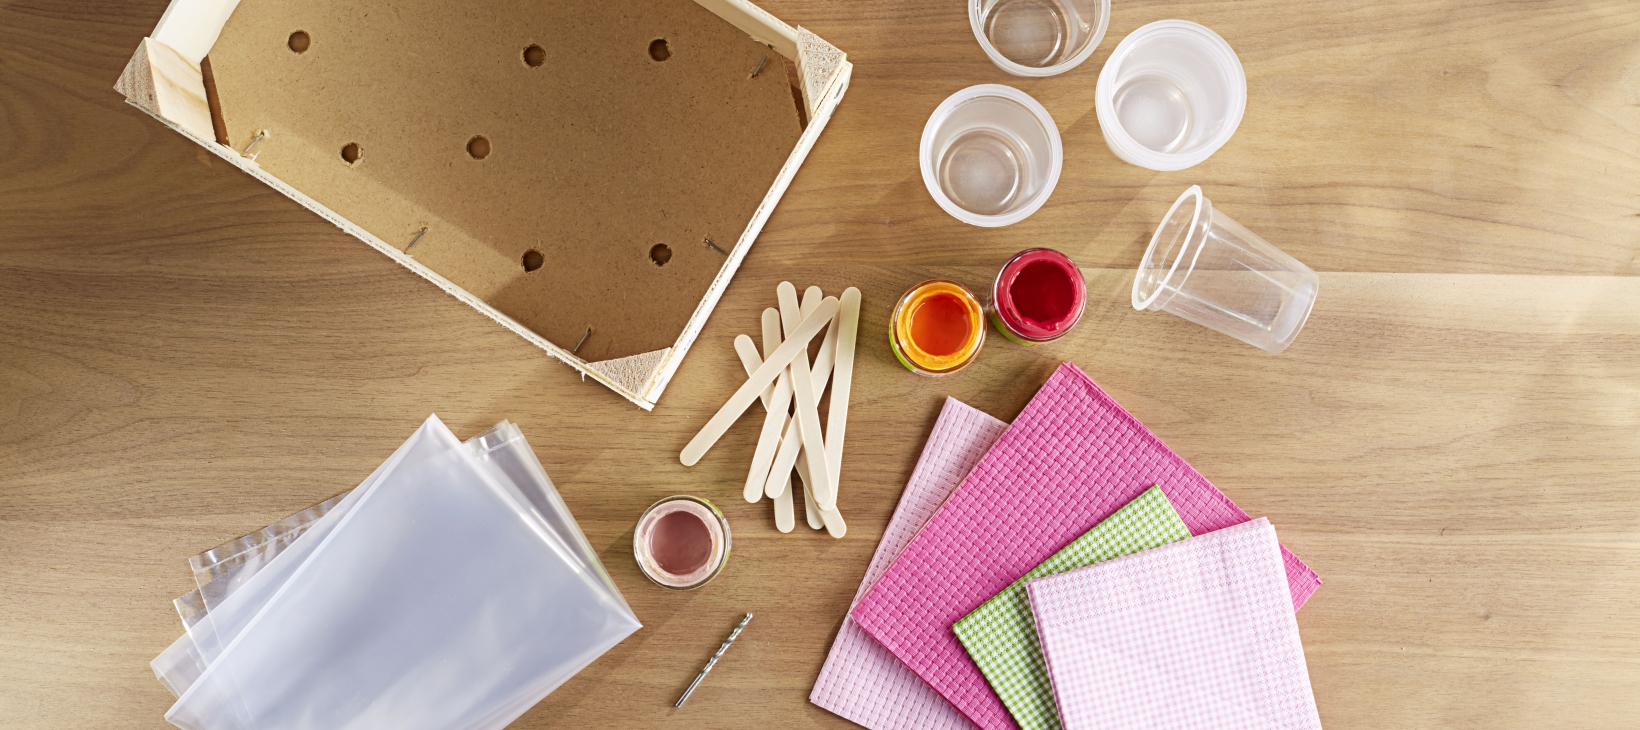 Material Becher-Upcycling-Tipp